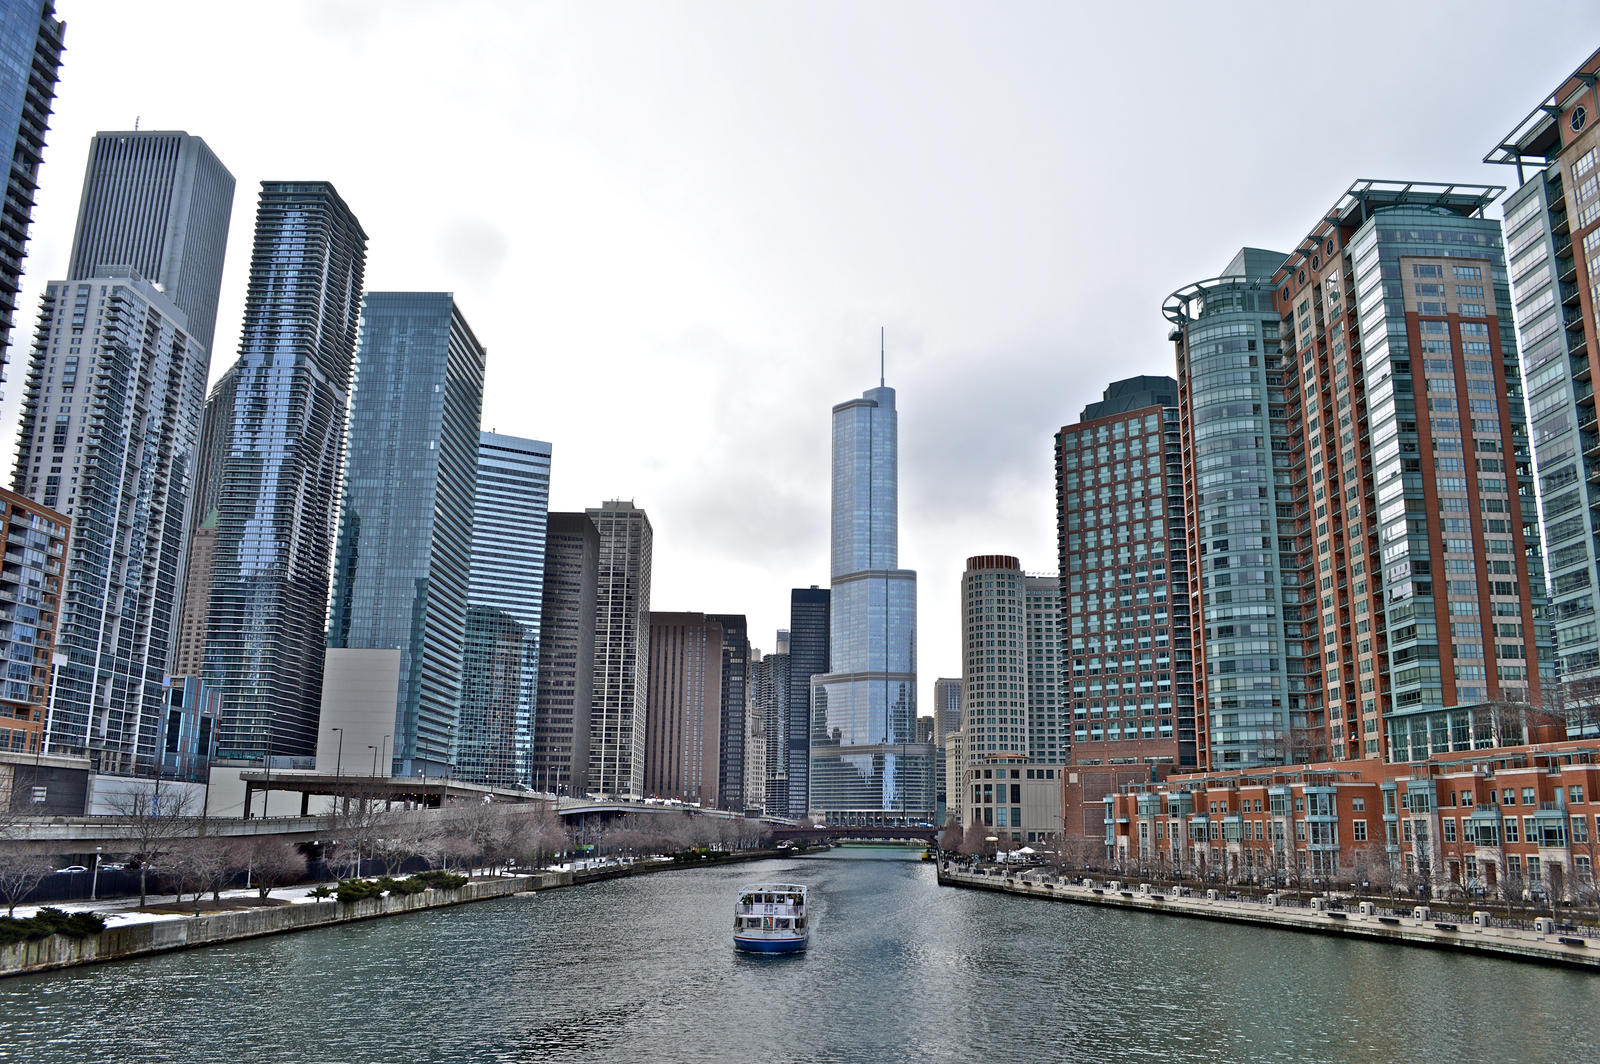 chicago_river_by_tonylokes-d7af3zw.jpg